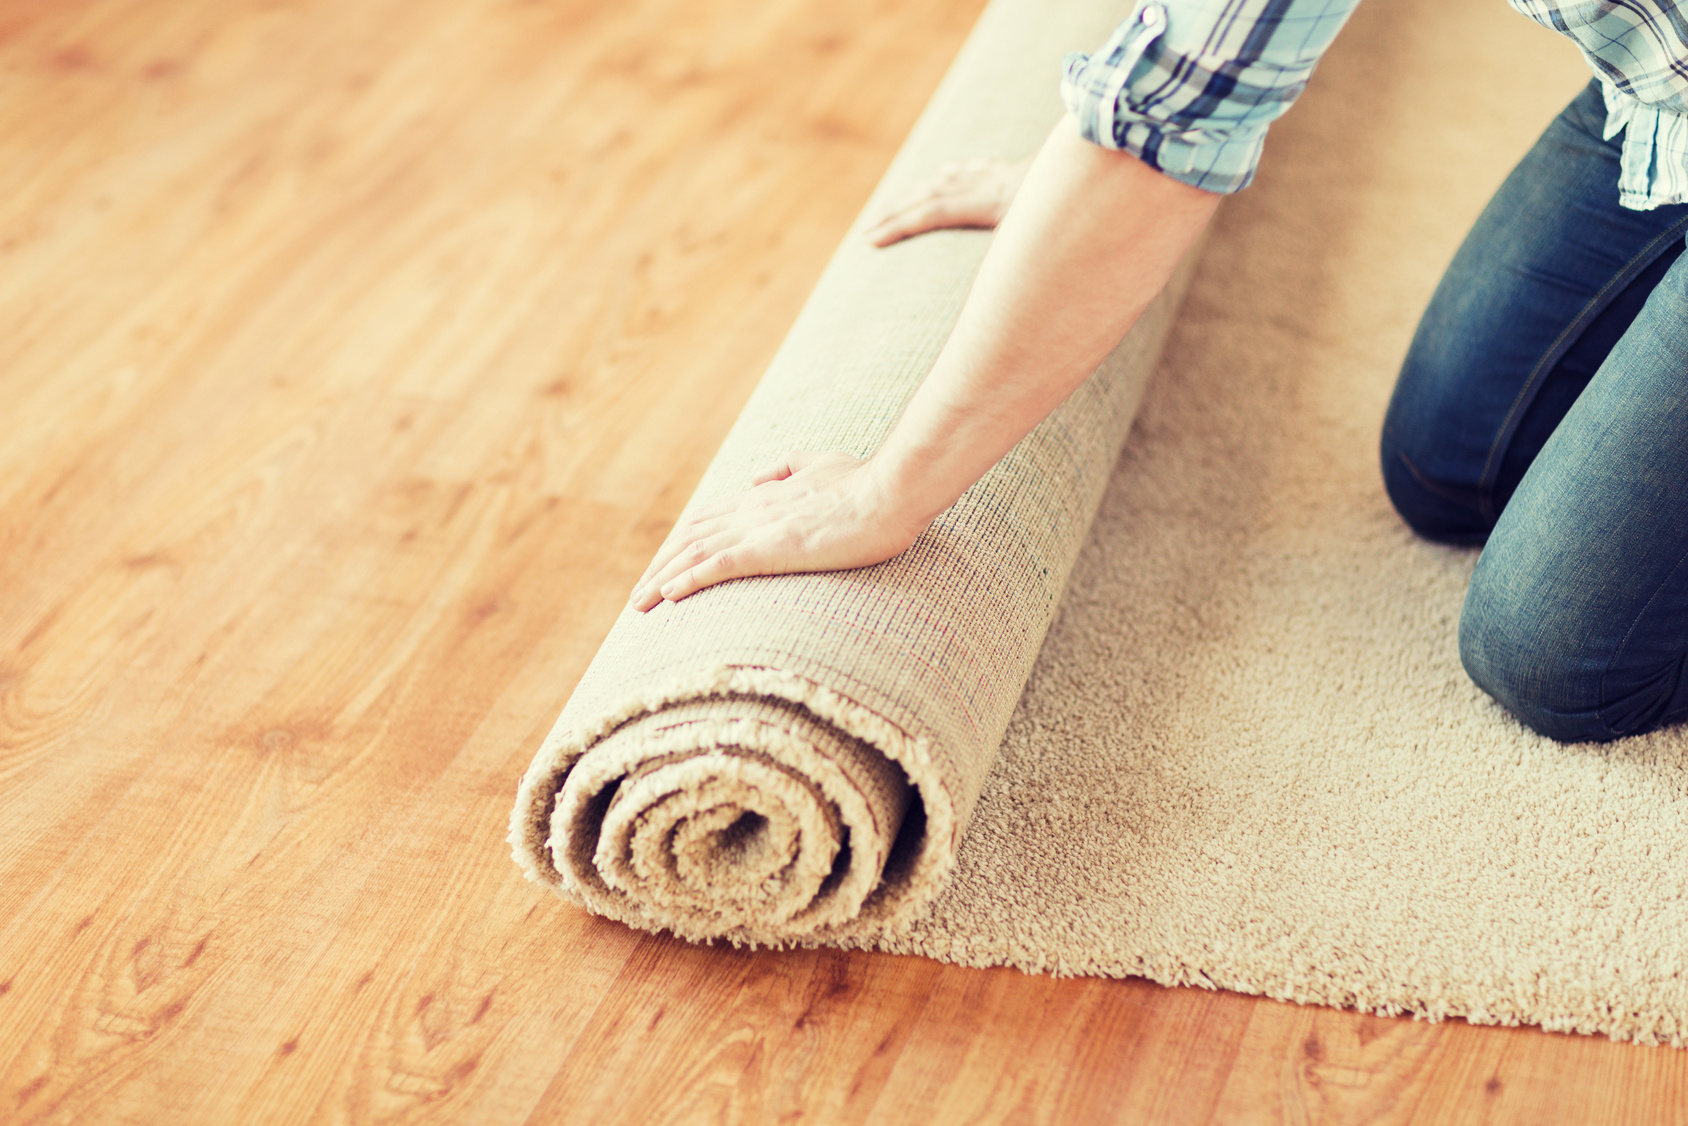 Carpet being rolled out onto hardwood flooring